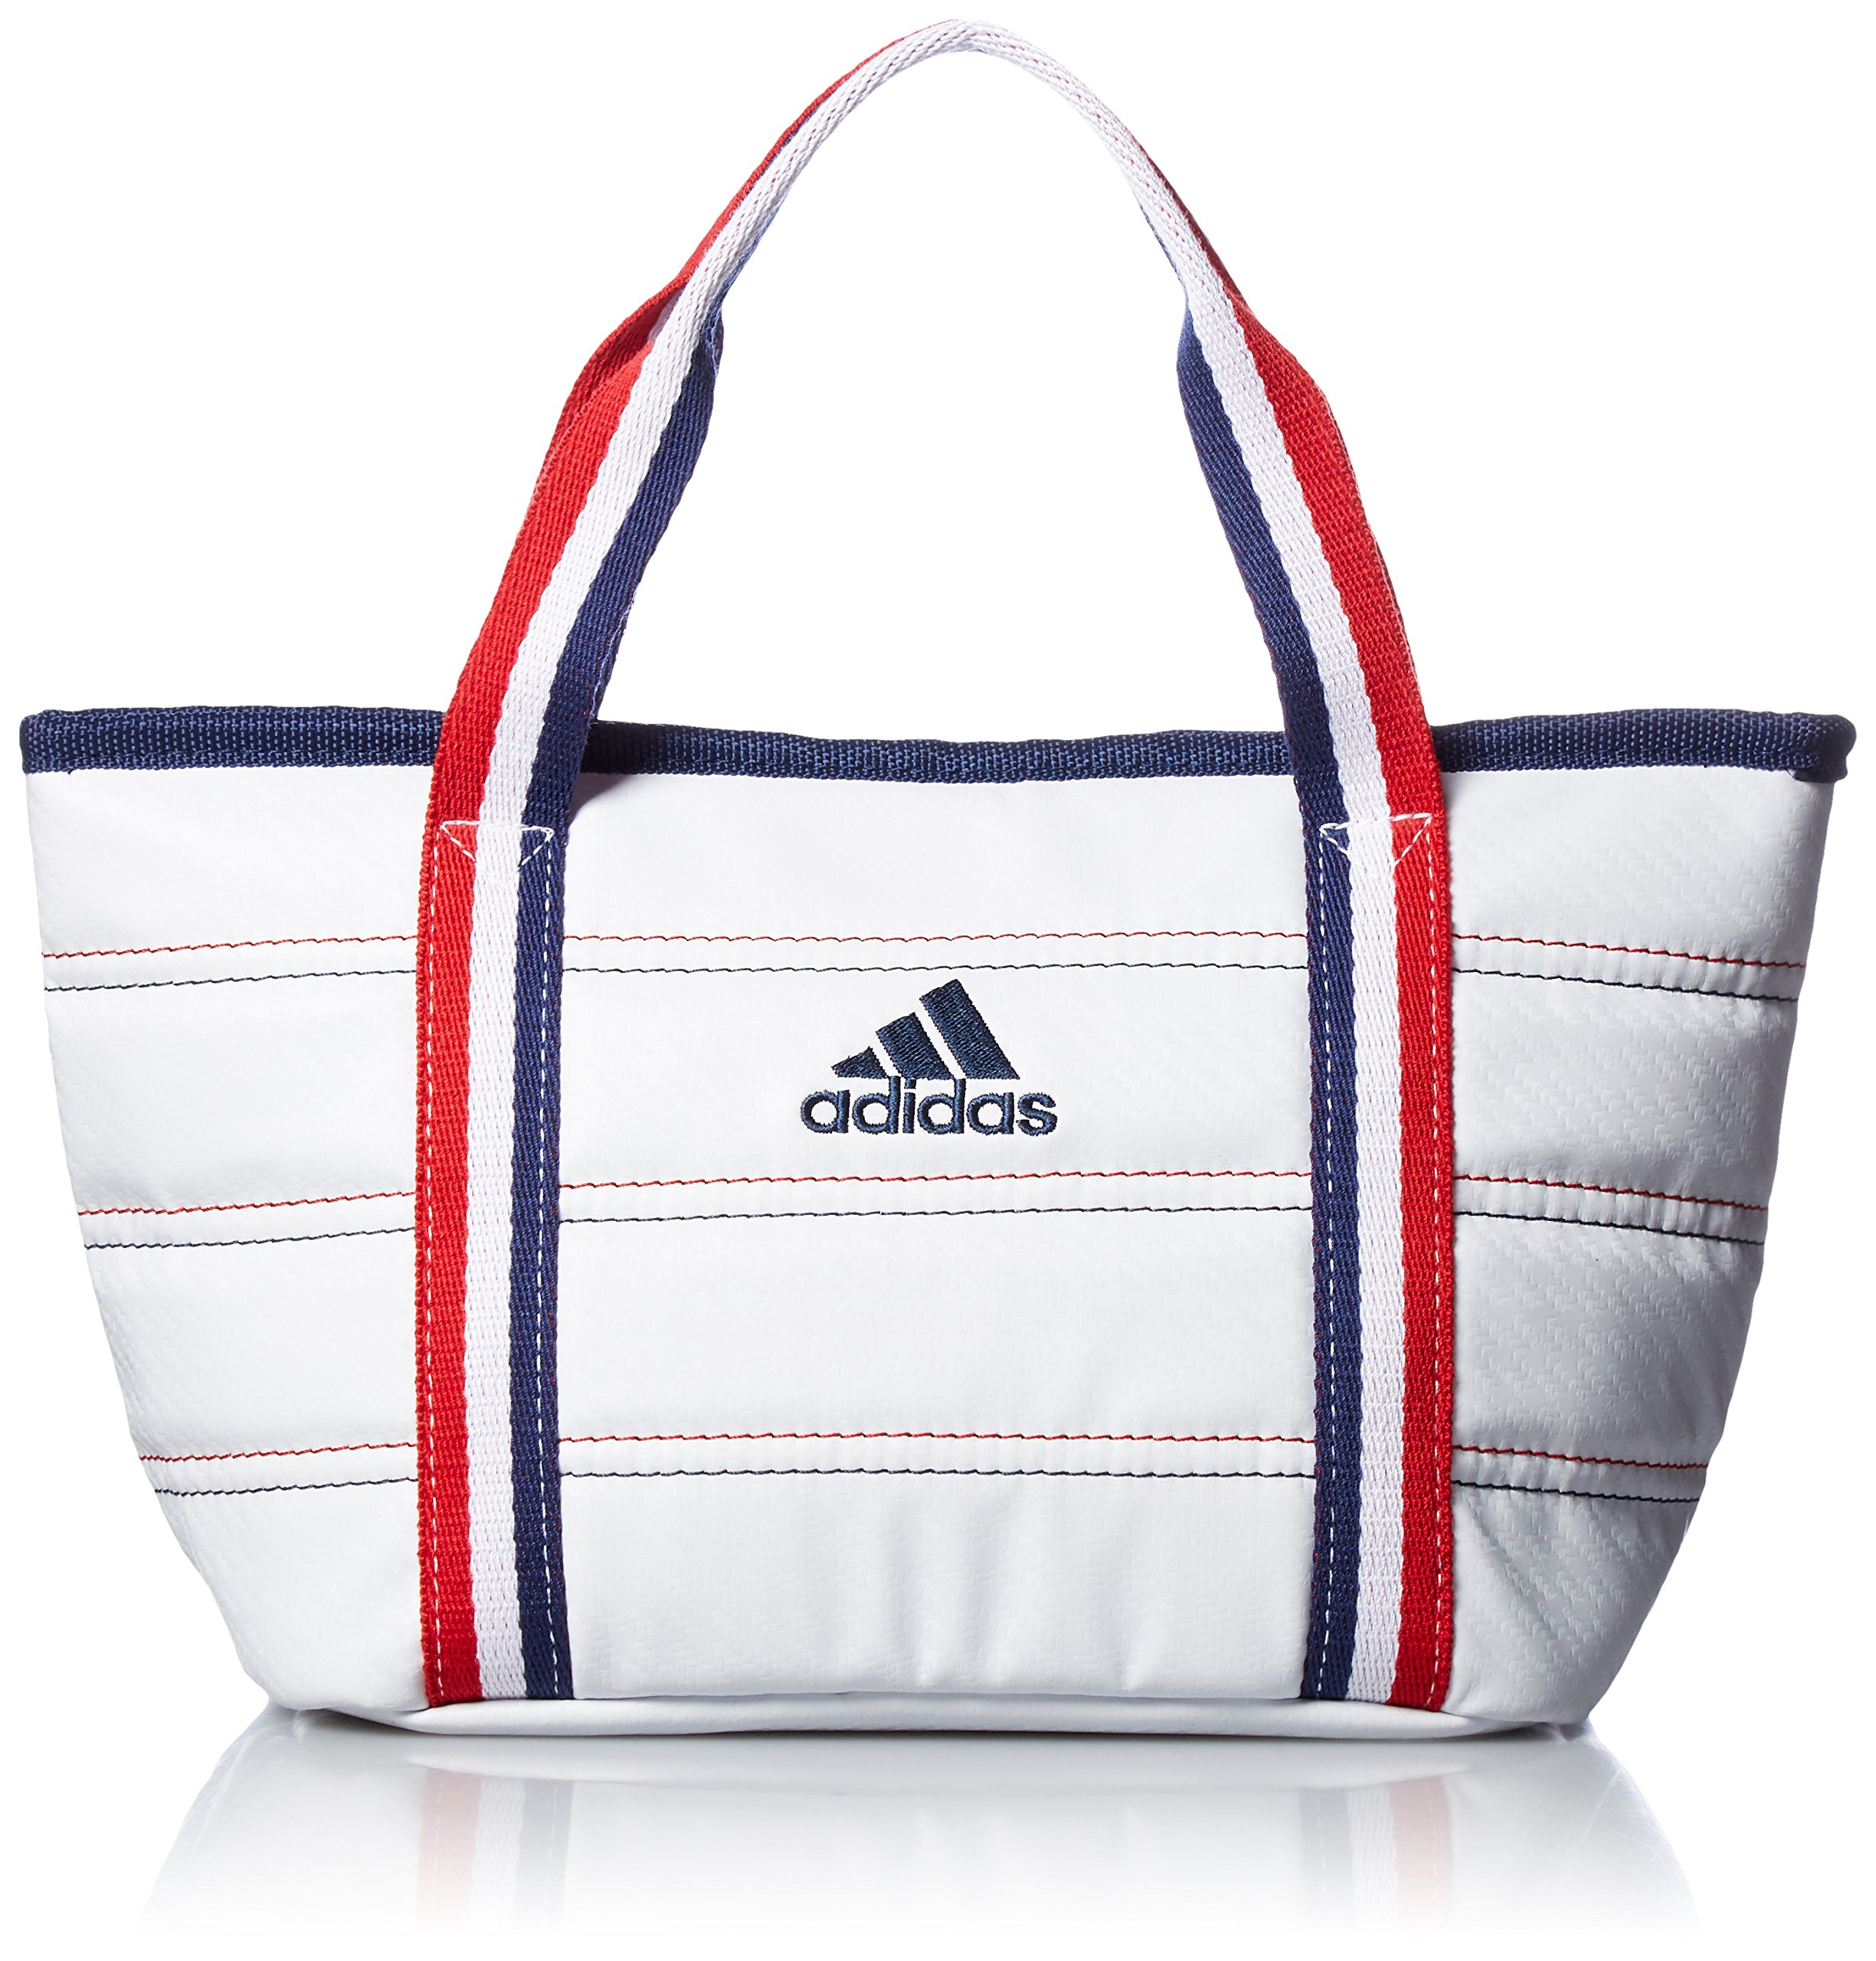 [Adidas Golf] Round Tote Bag L23 × W18 × H13 cm AWT 28 A 42074 White by adidas (Image #1)